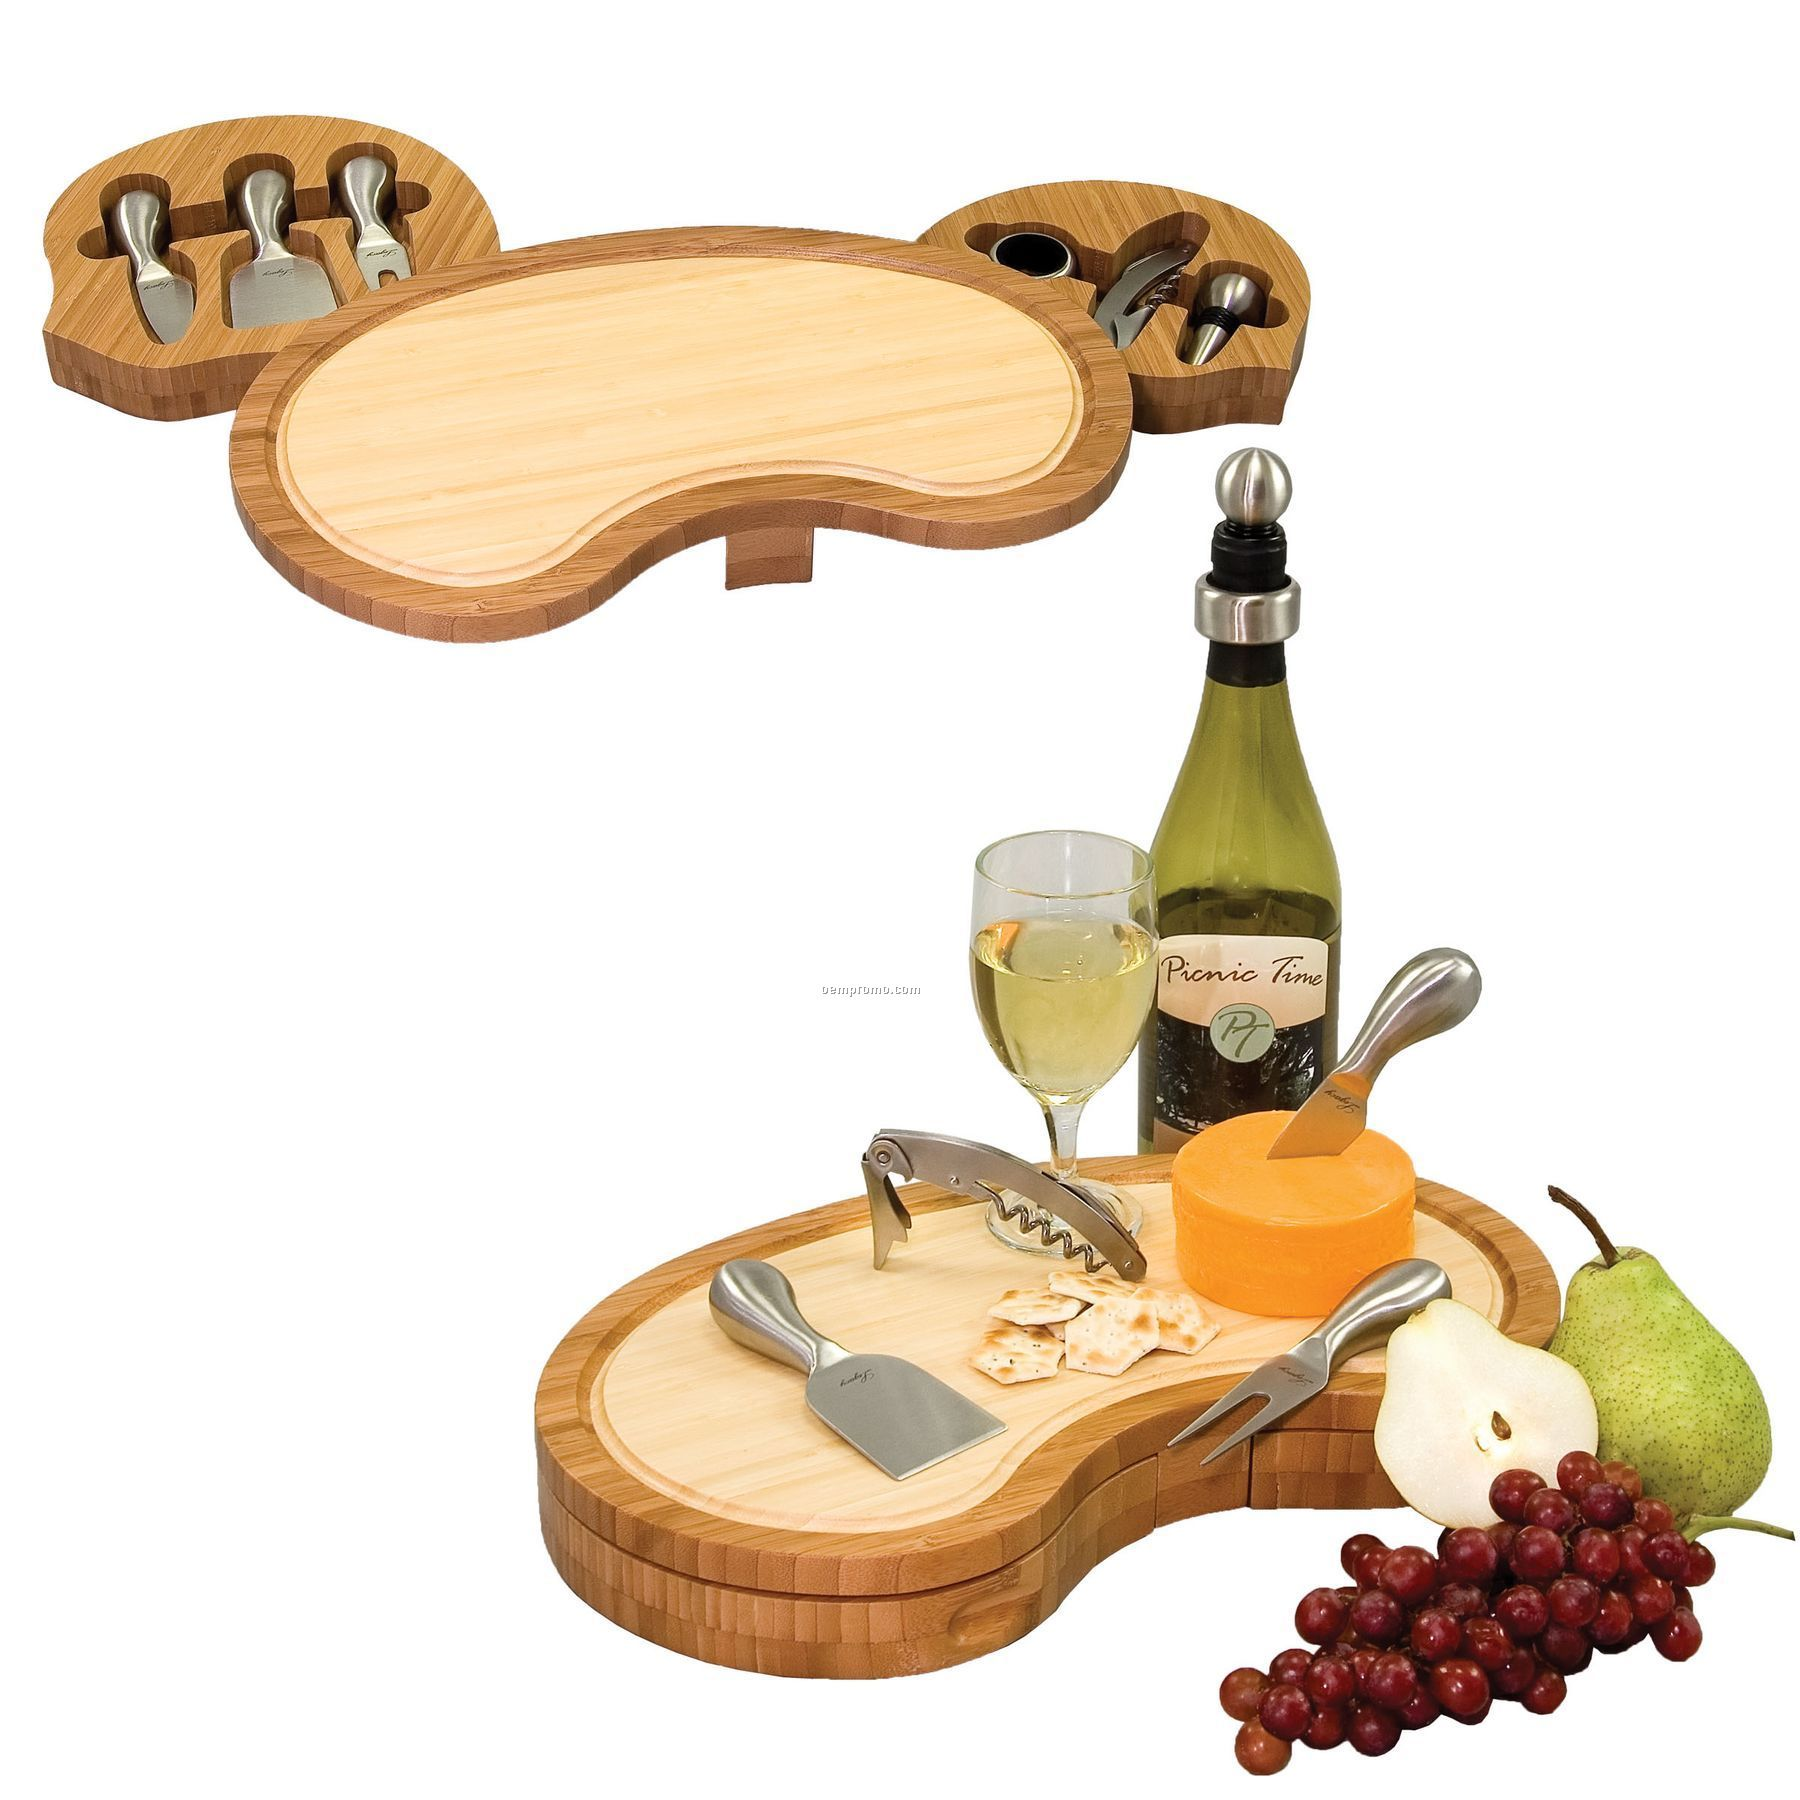 Mariposa Gourmet 2 Tone Cutting Board W/ 6 Wine & Cheese Tools In 2 Drawers